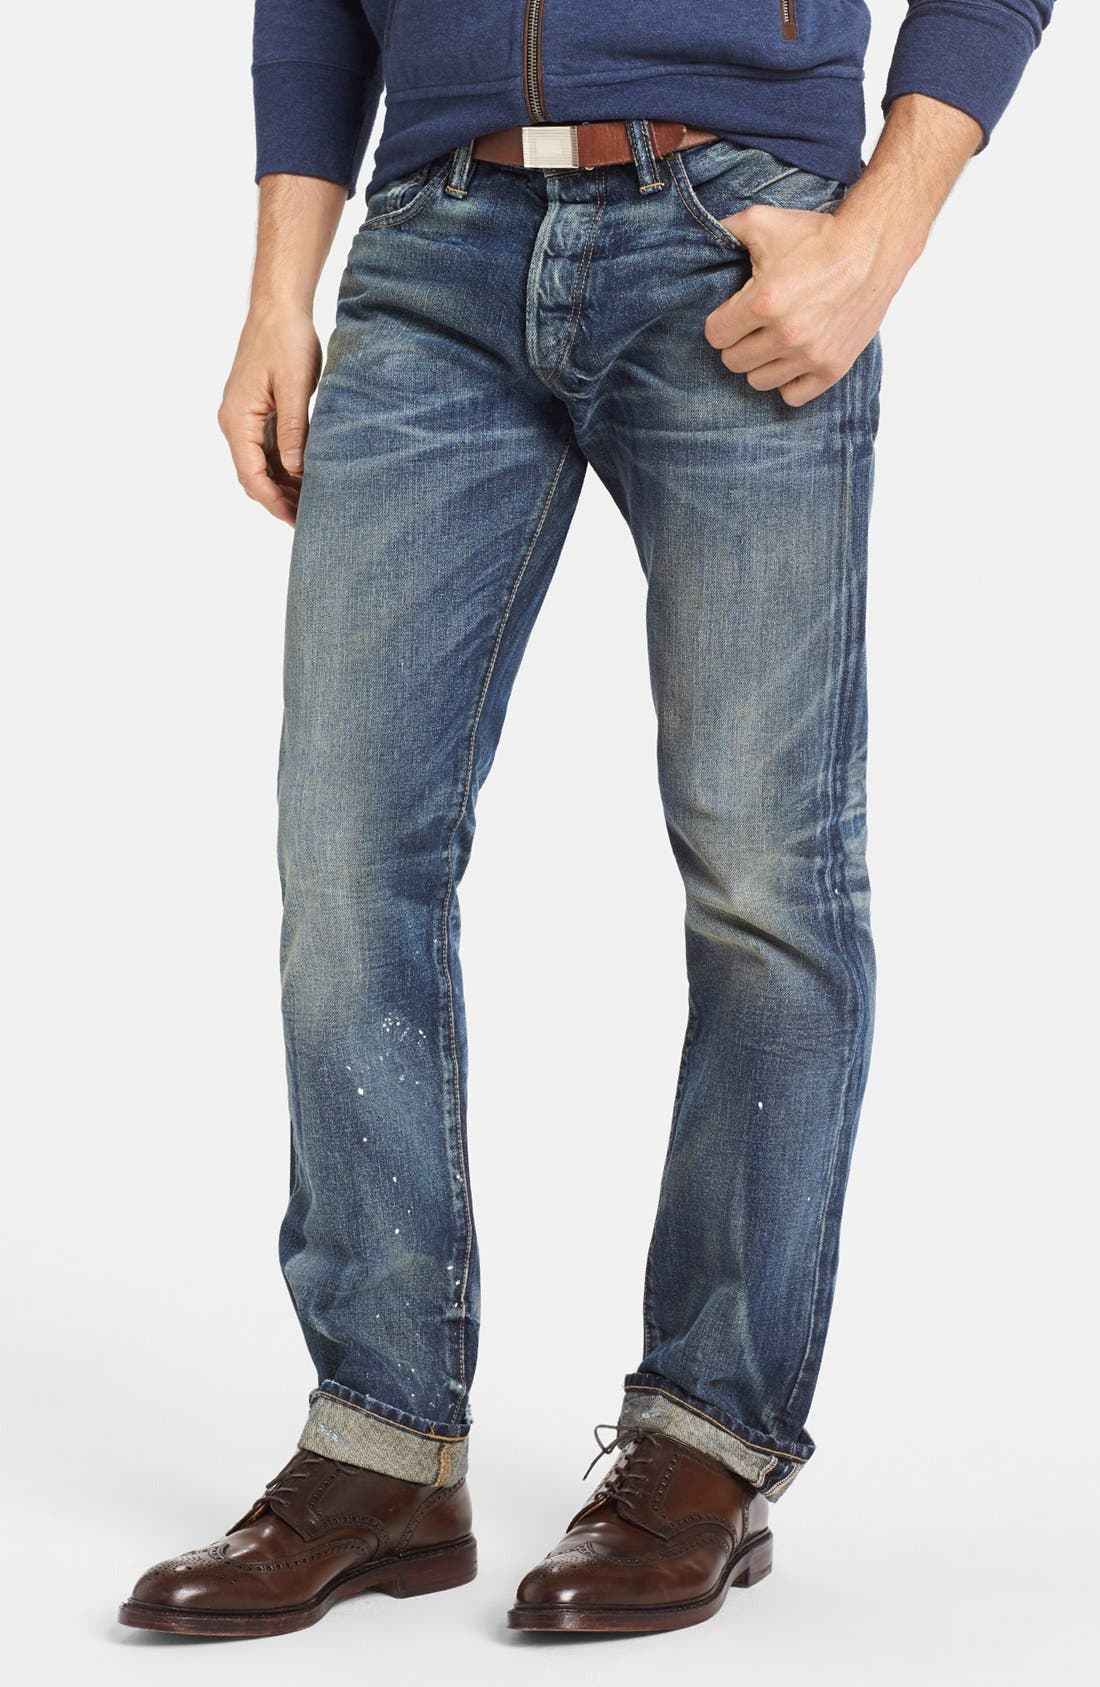 Alternate Image 1 Selected - Polo Ralph Lauren Slim Fit Jeans (Linden Rinse)